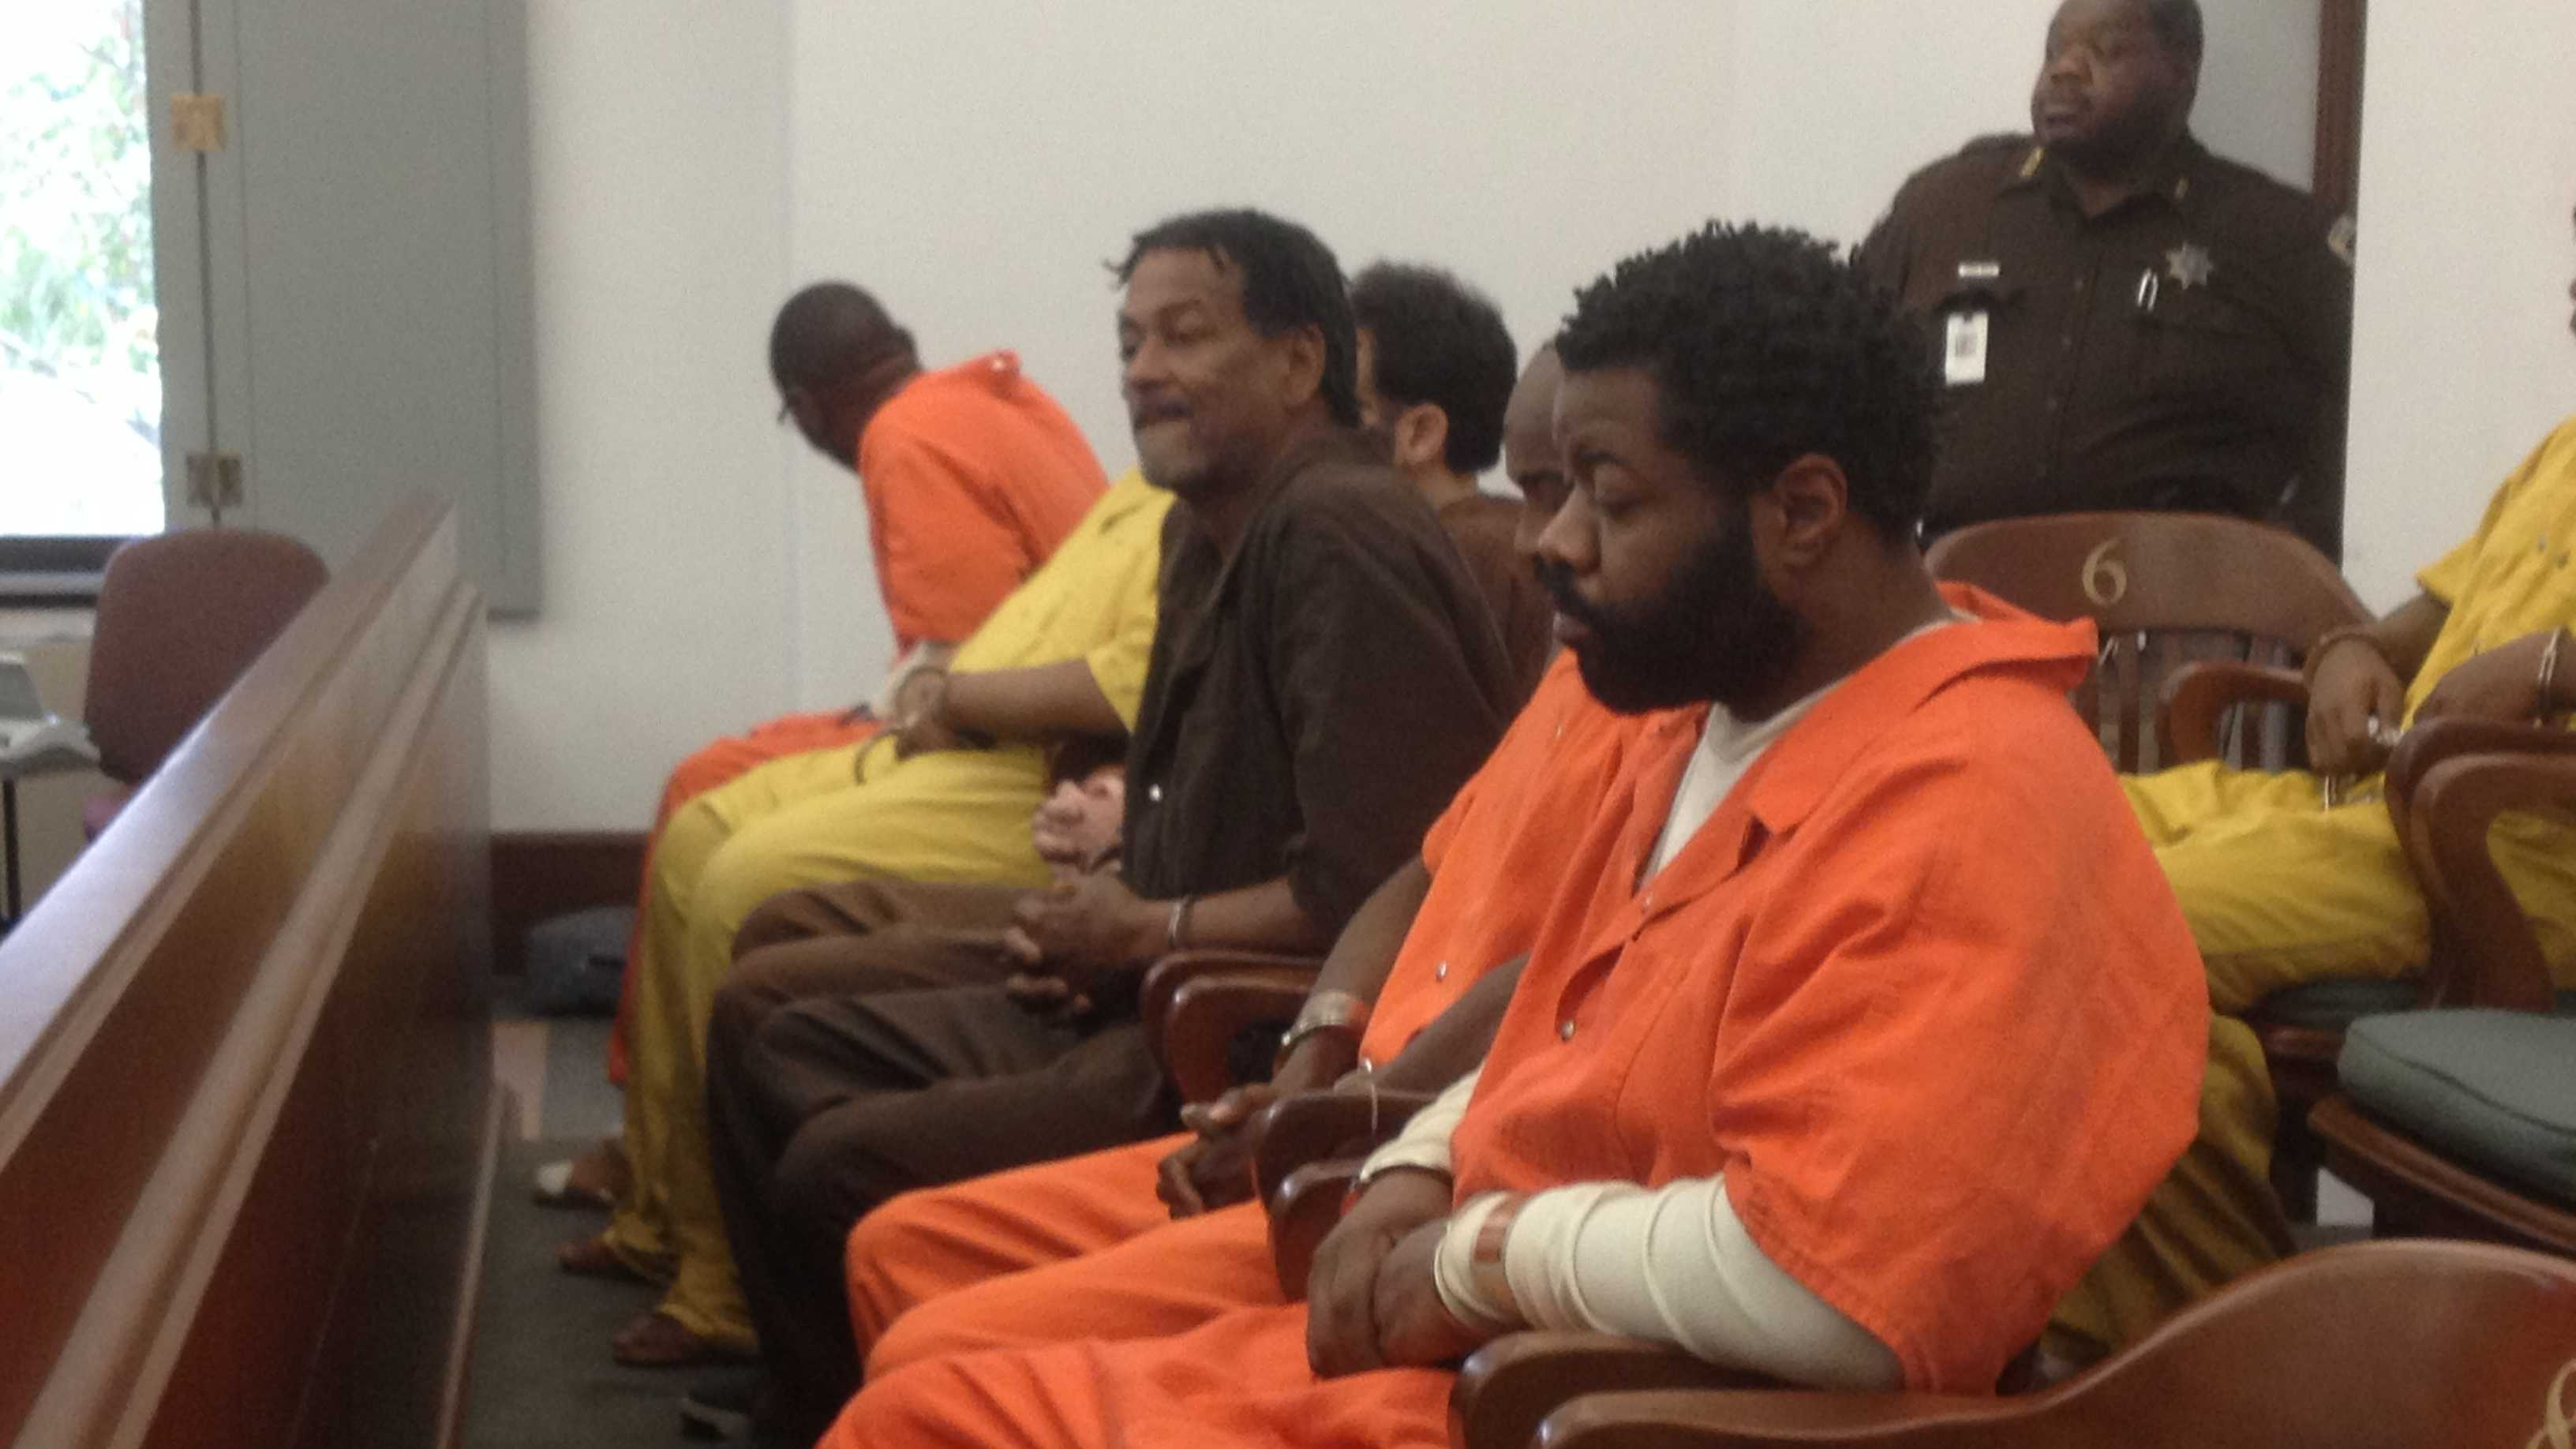 Percy Barber, forefront wearing orange, is charged with murder in the February beating death of Willie Burton.